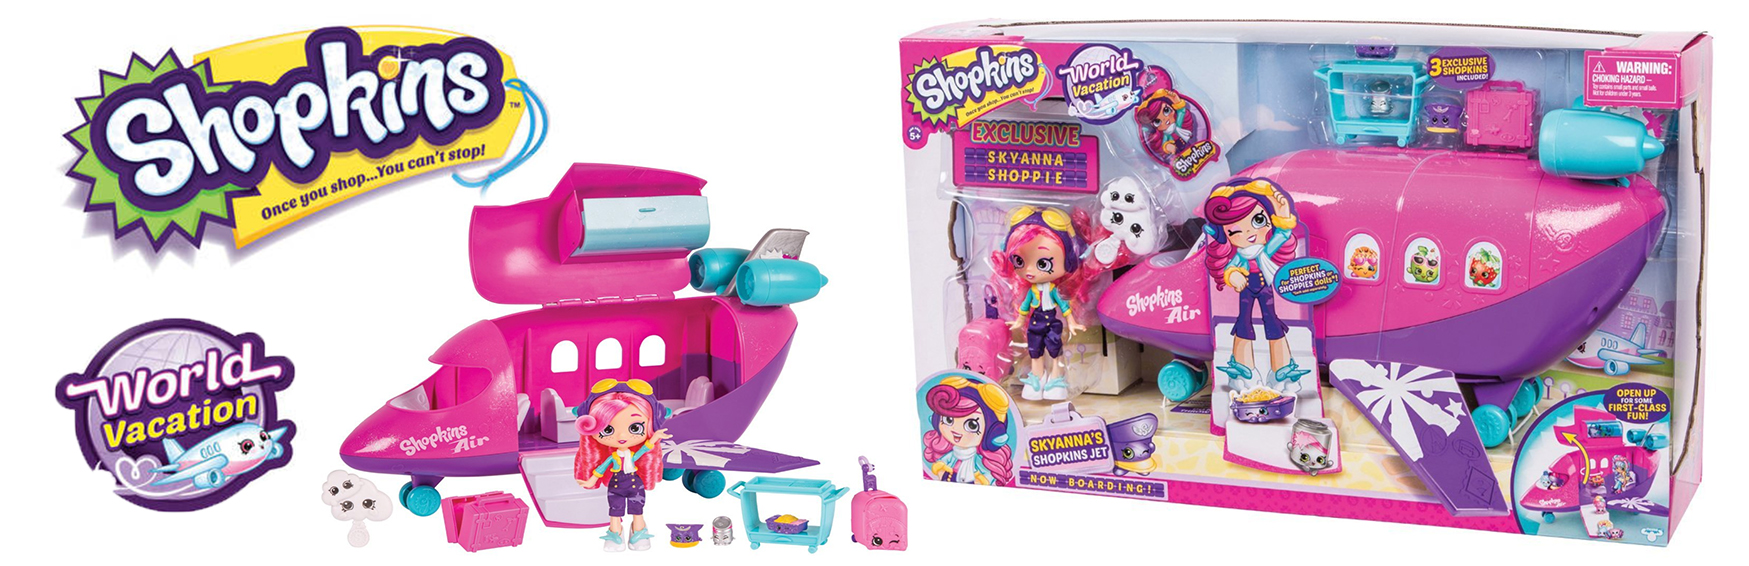 Shopkins Shoppies Skyanna Jwt Playset